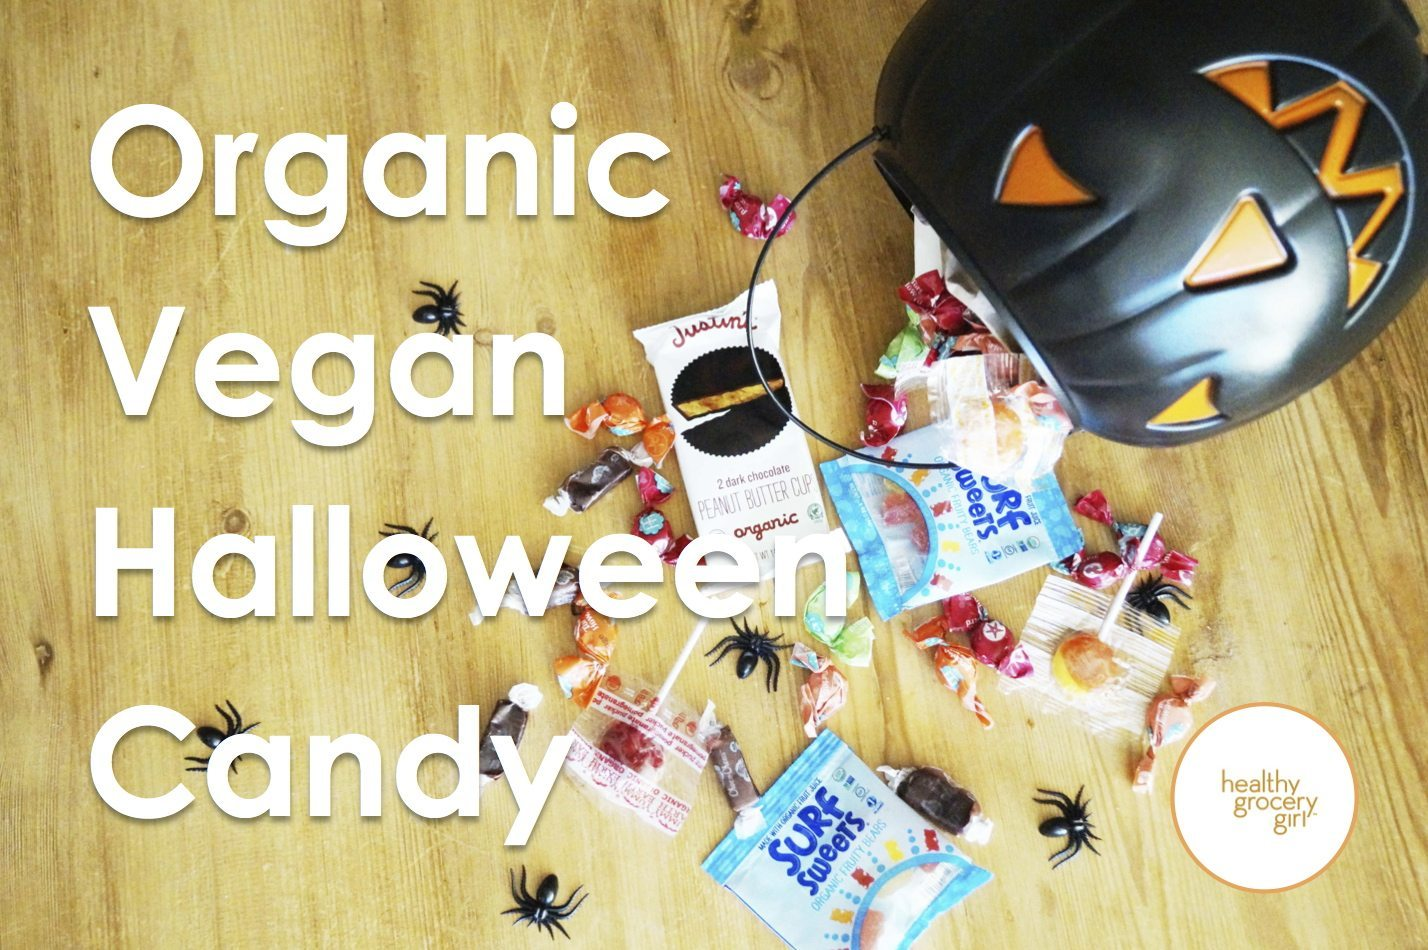 Healthy Grocery Girl | Halloween Party Ideas